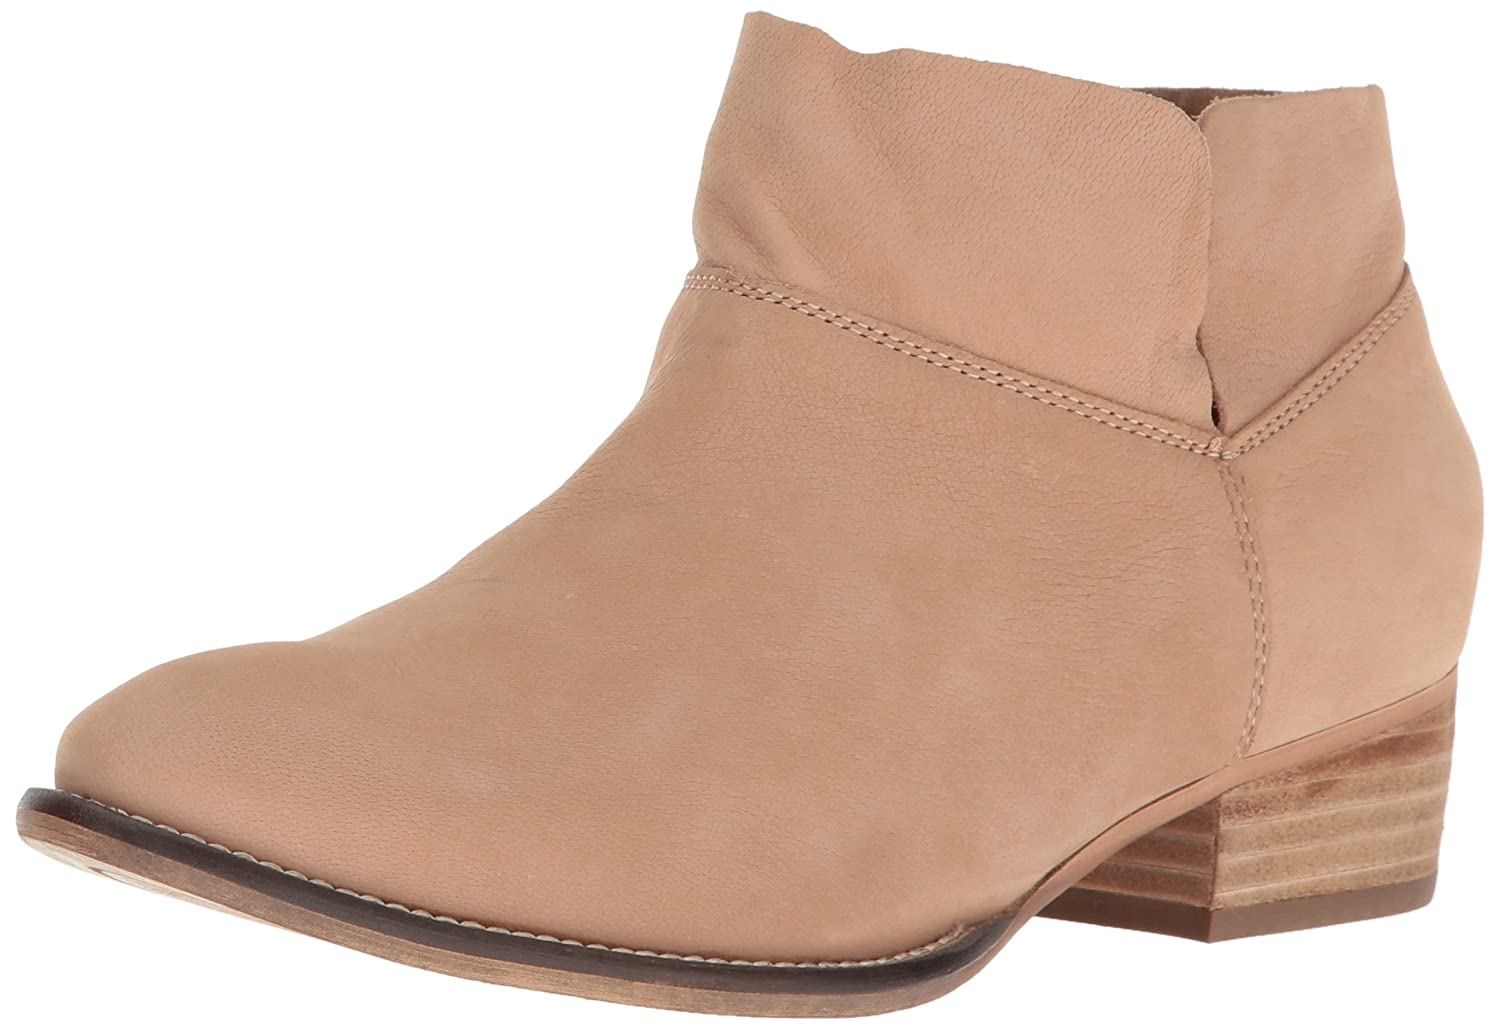 Seychelles Women's Snare Ankle Bootie B01I2B29N4 9.5 B(M) US|Pink